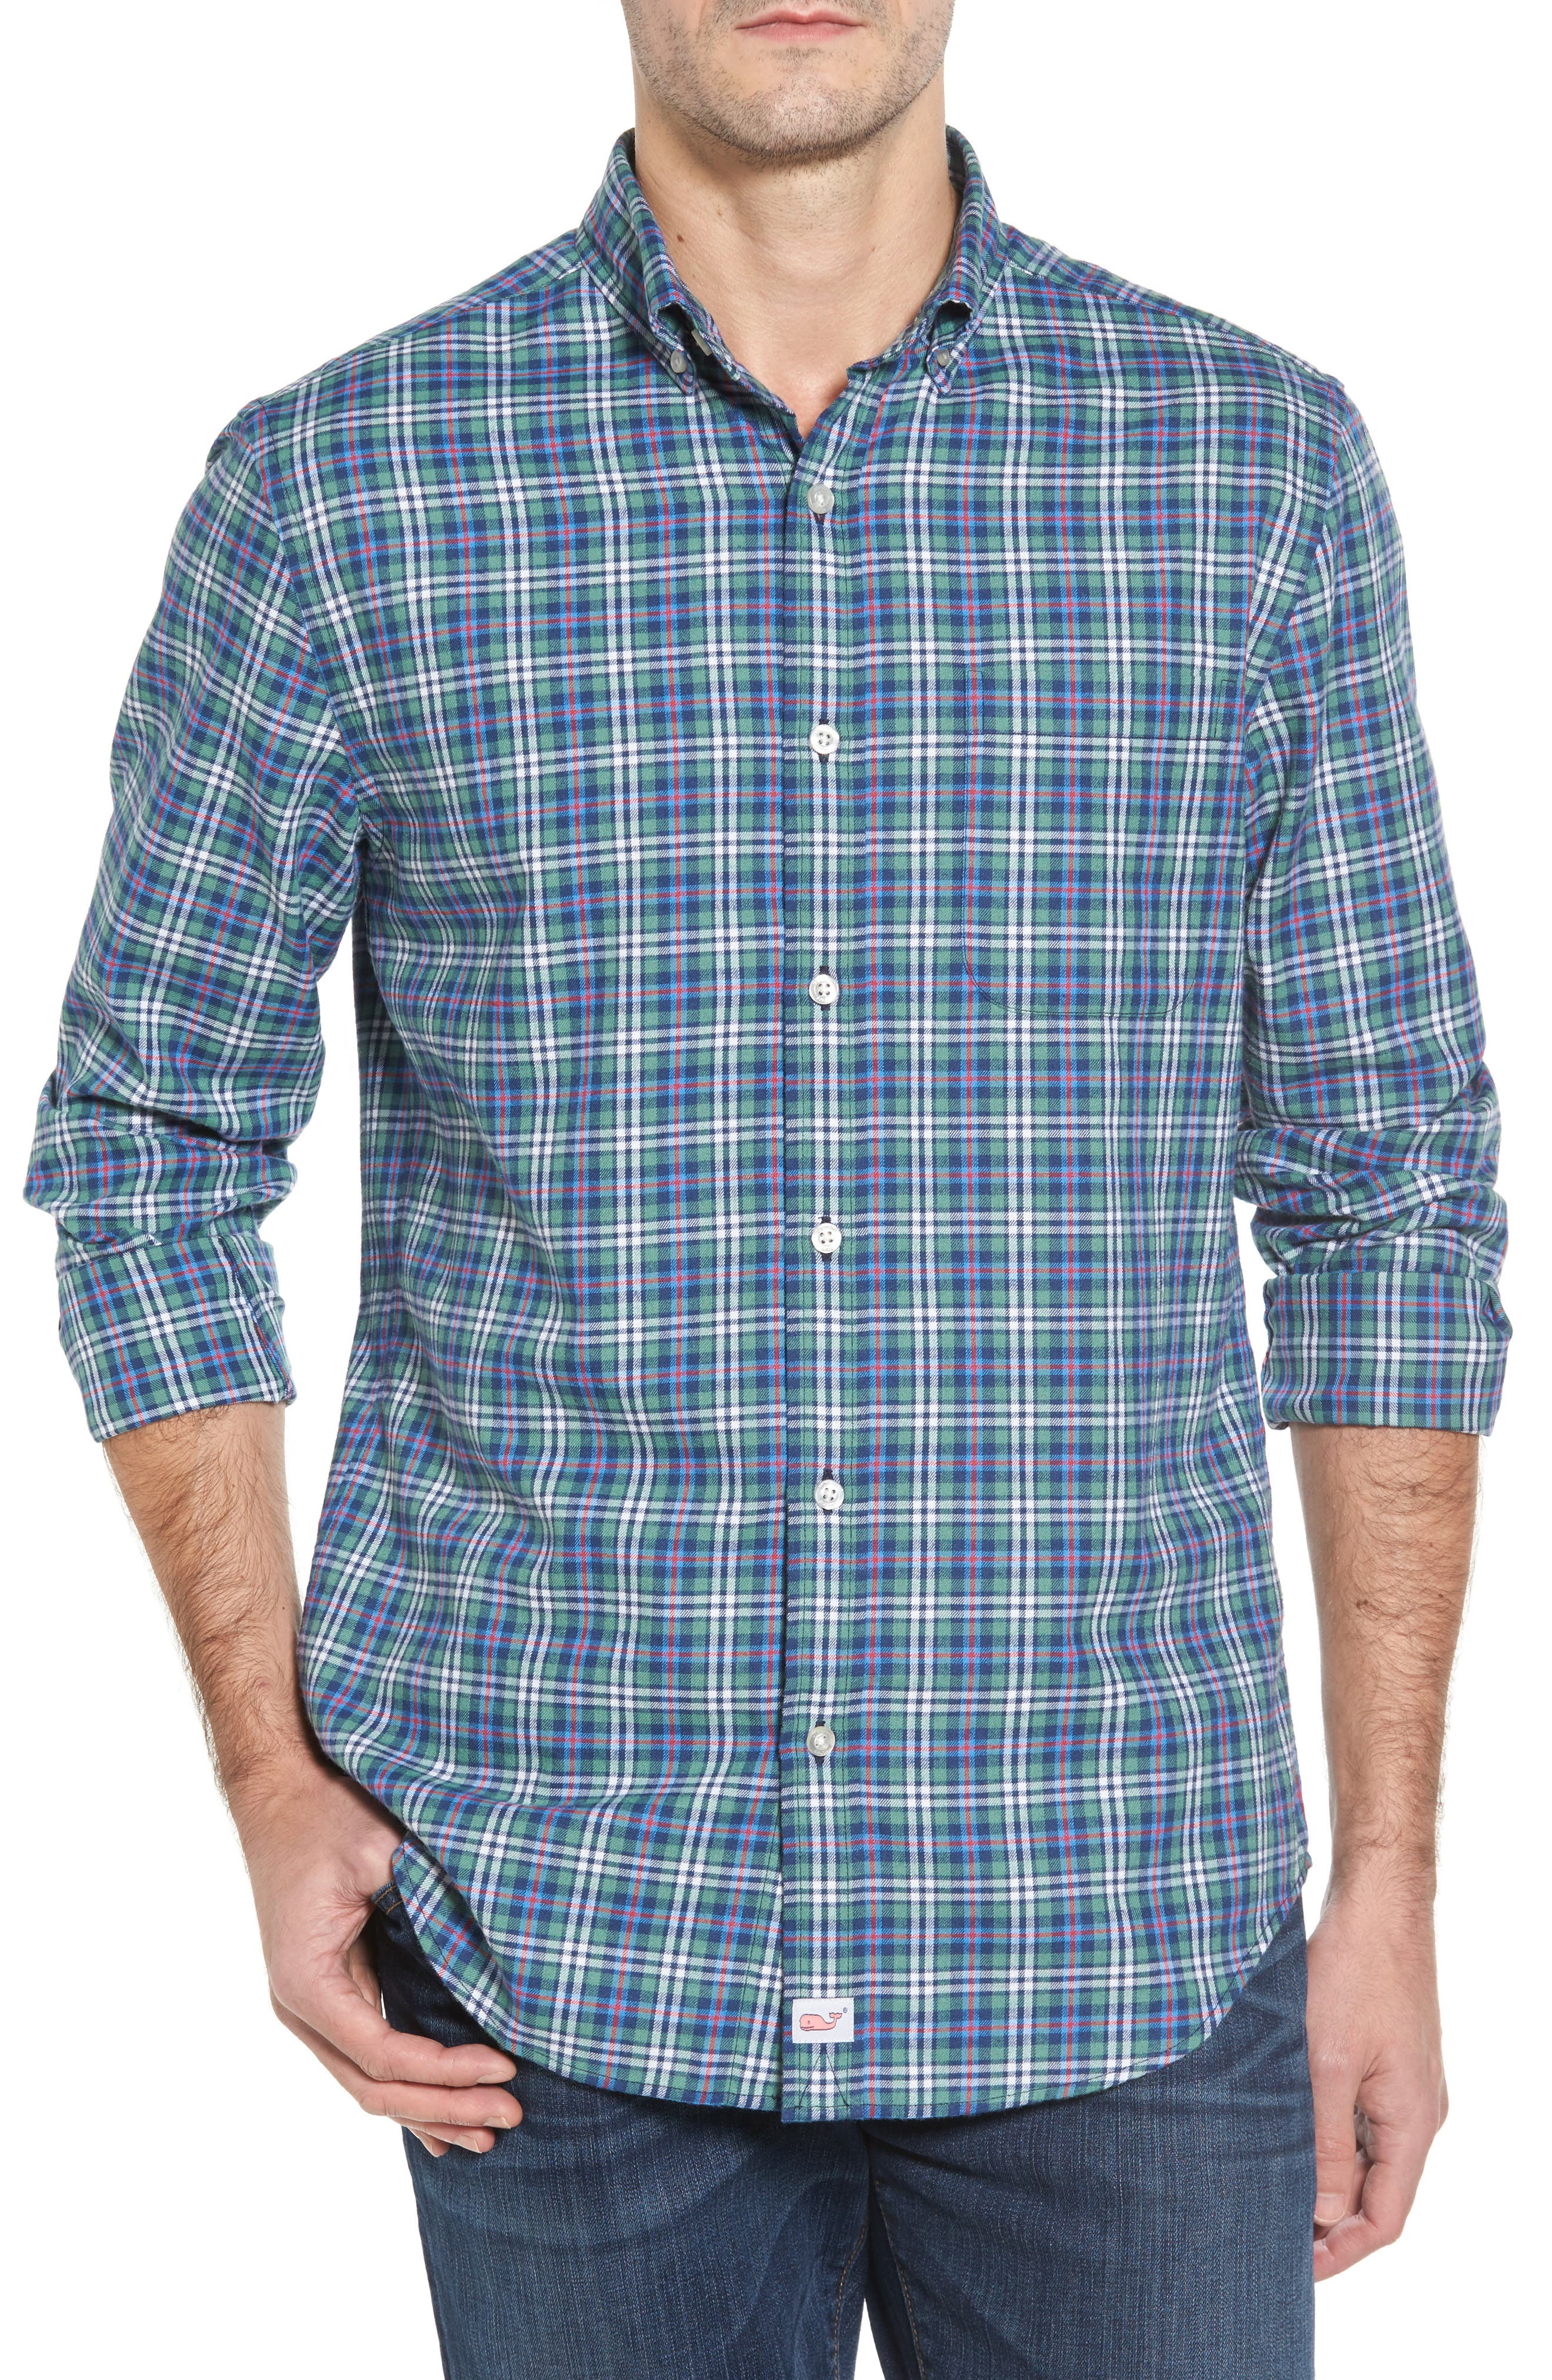 Murray Plaid Classic Fit Sport Shirt,                             Main thumbnail 1, color,                             Turf Green